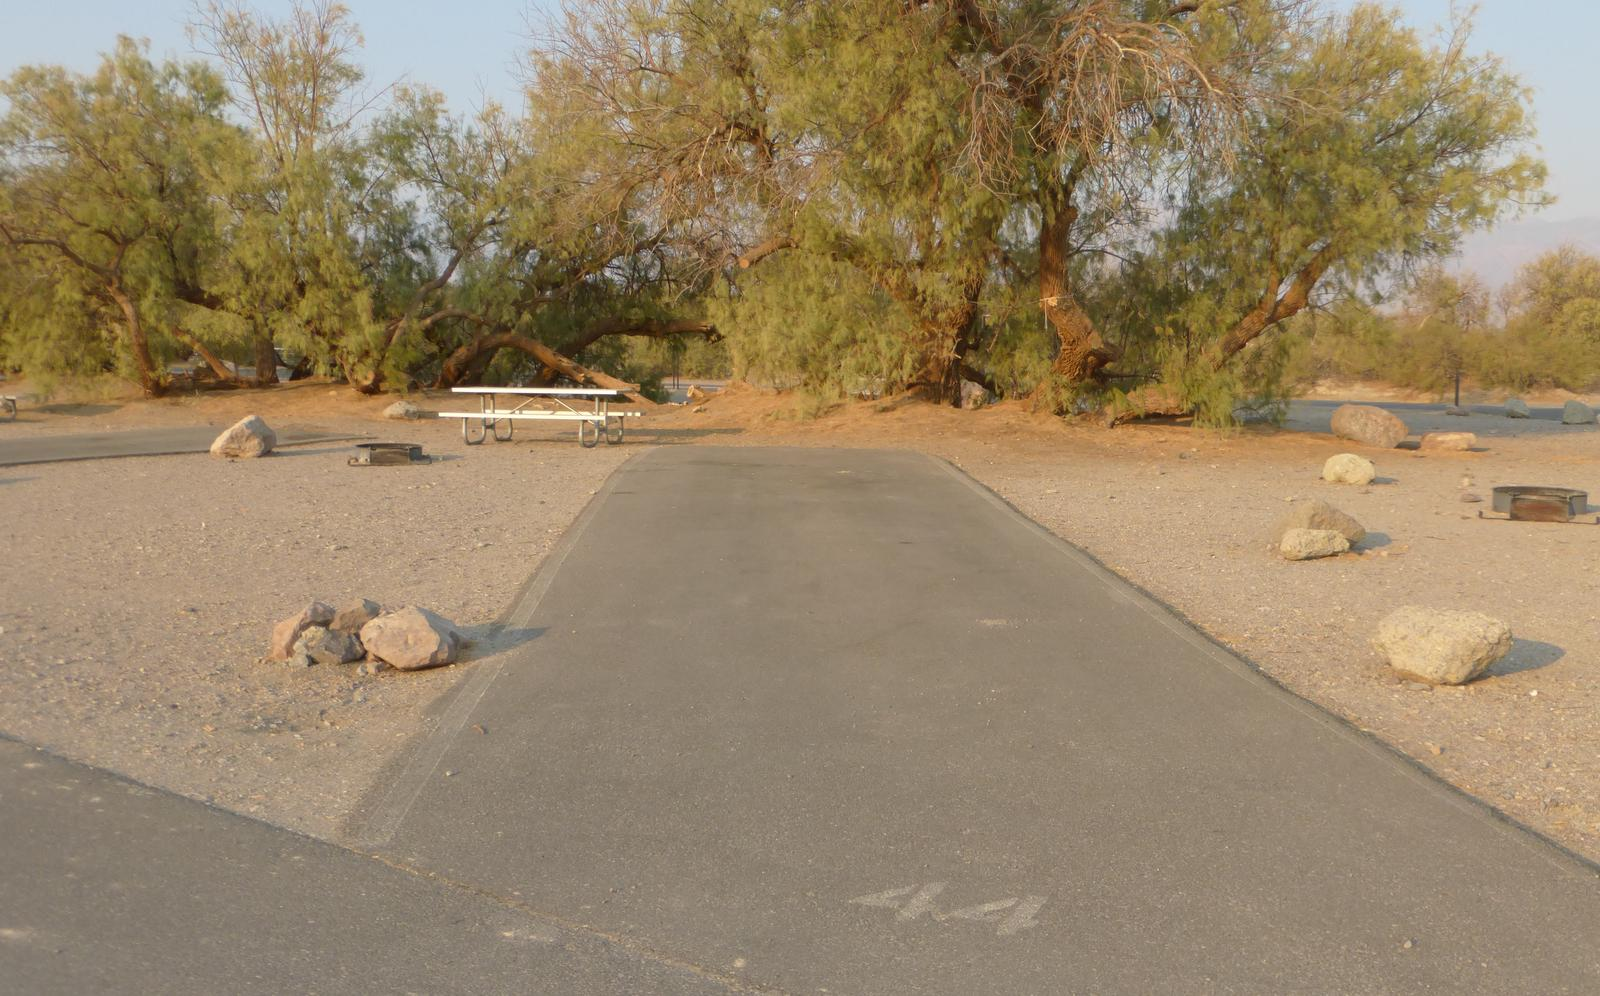 Furnace Creek Campground standard nonelectric site #44 with picnic table and fire ring.